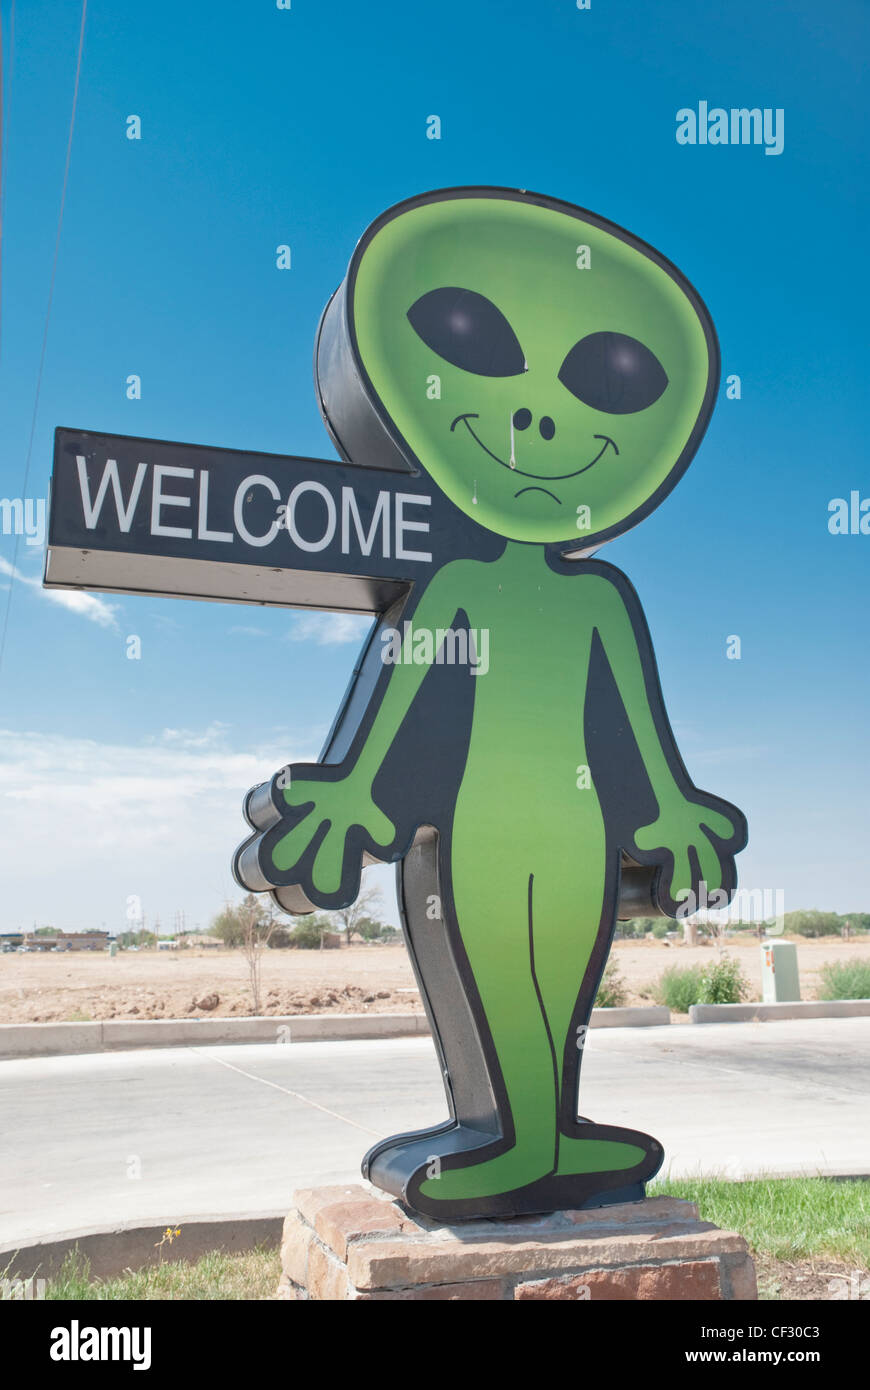 Aliens and UFO's are the theme of the town in Roswell, New Mexico. - Stock Image